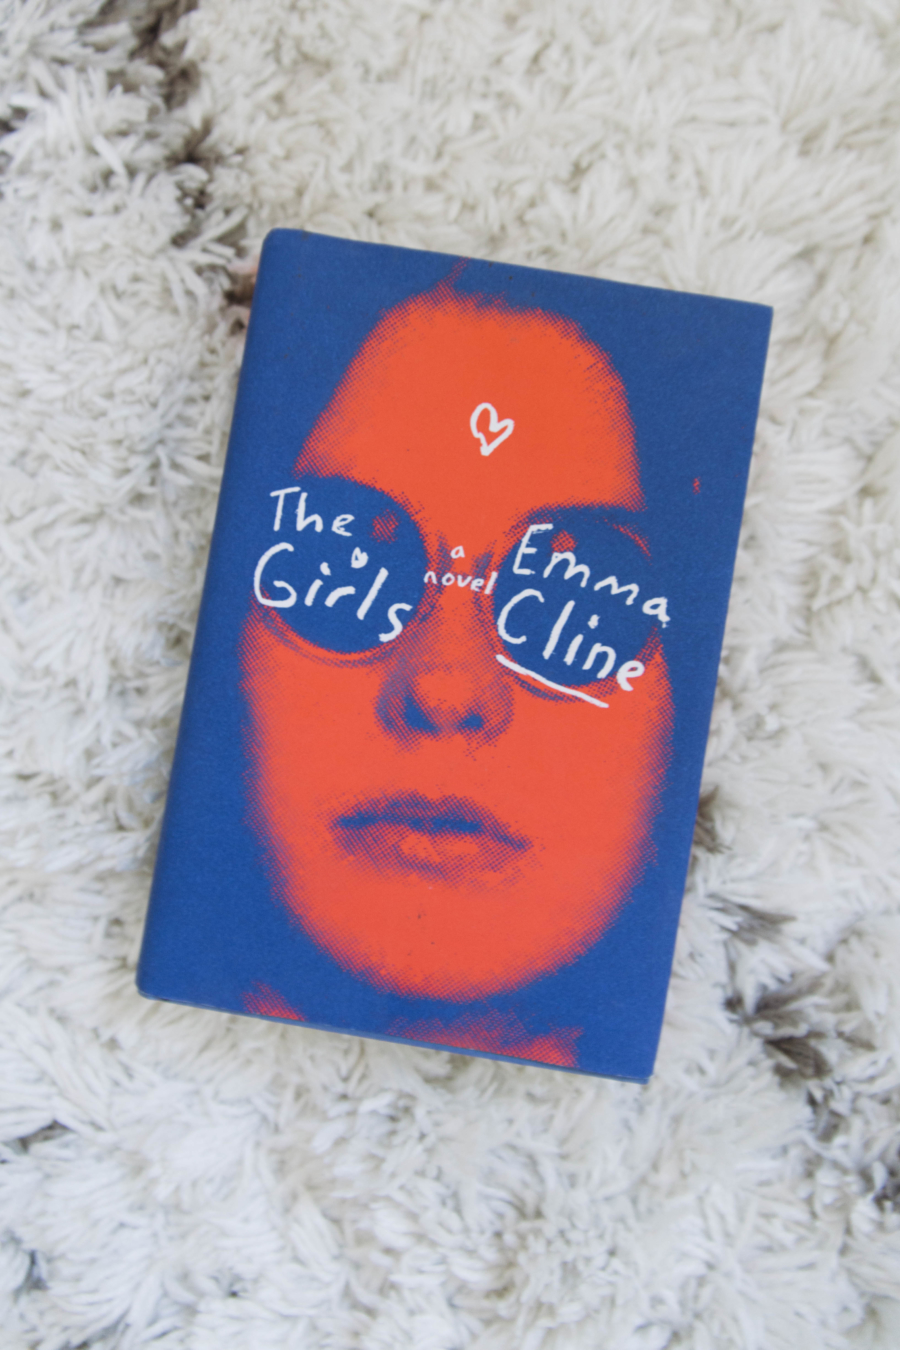 Summer 2017 Reading List The Girls by Emma Cline